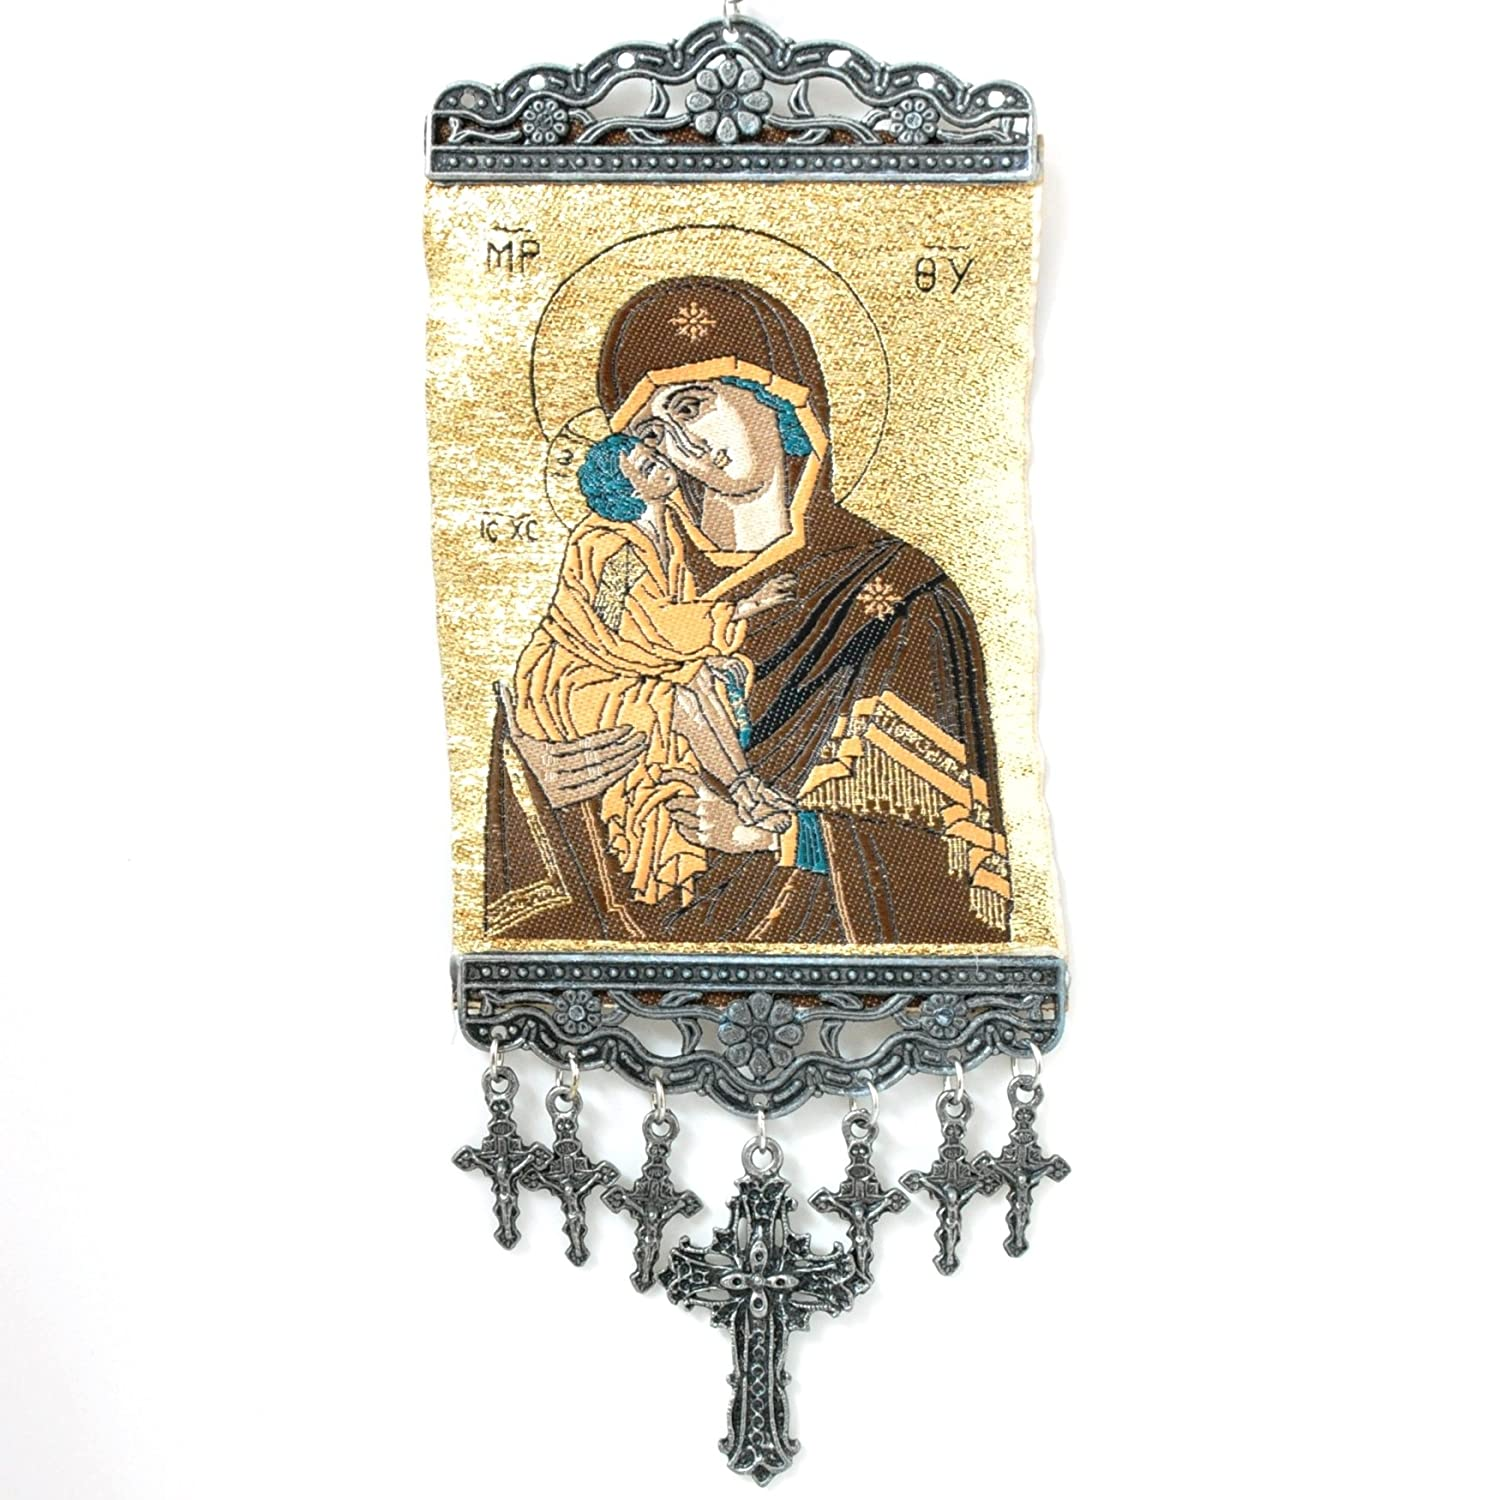 Madonna Mary Baby Jesus, Cross Wall Hanging Tapestry Banner N/A 9130